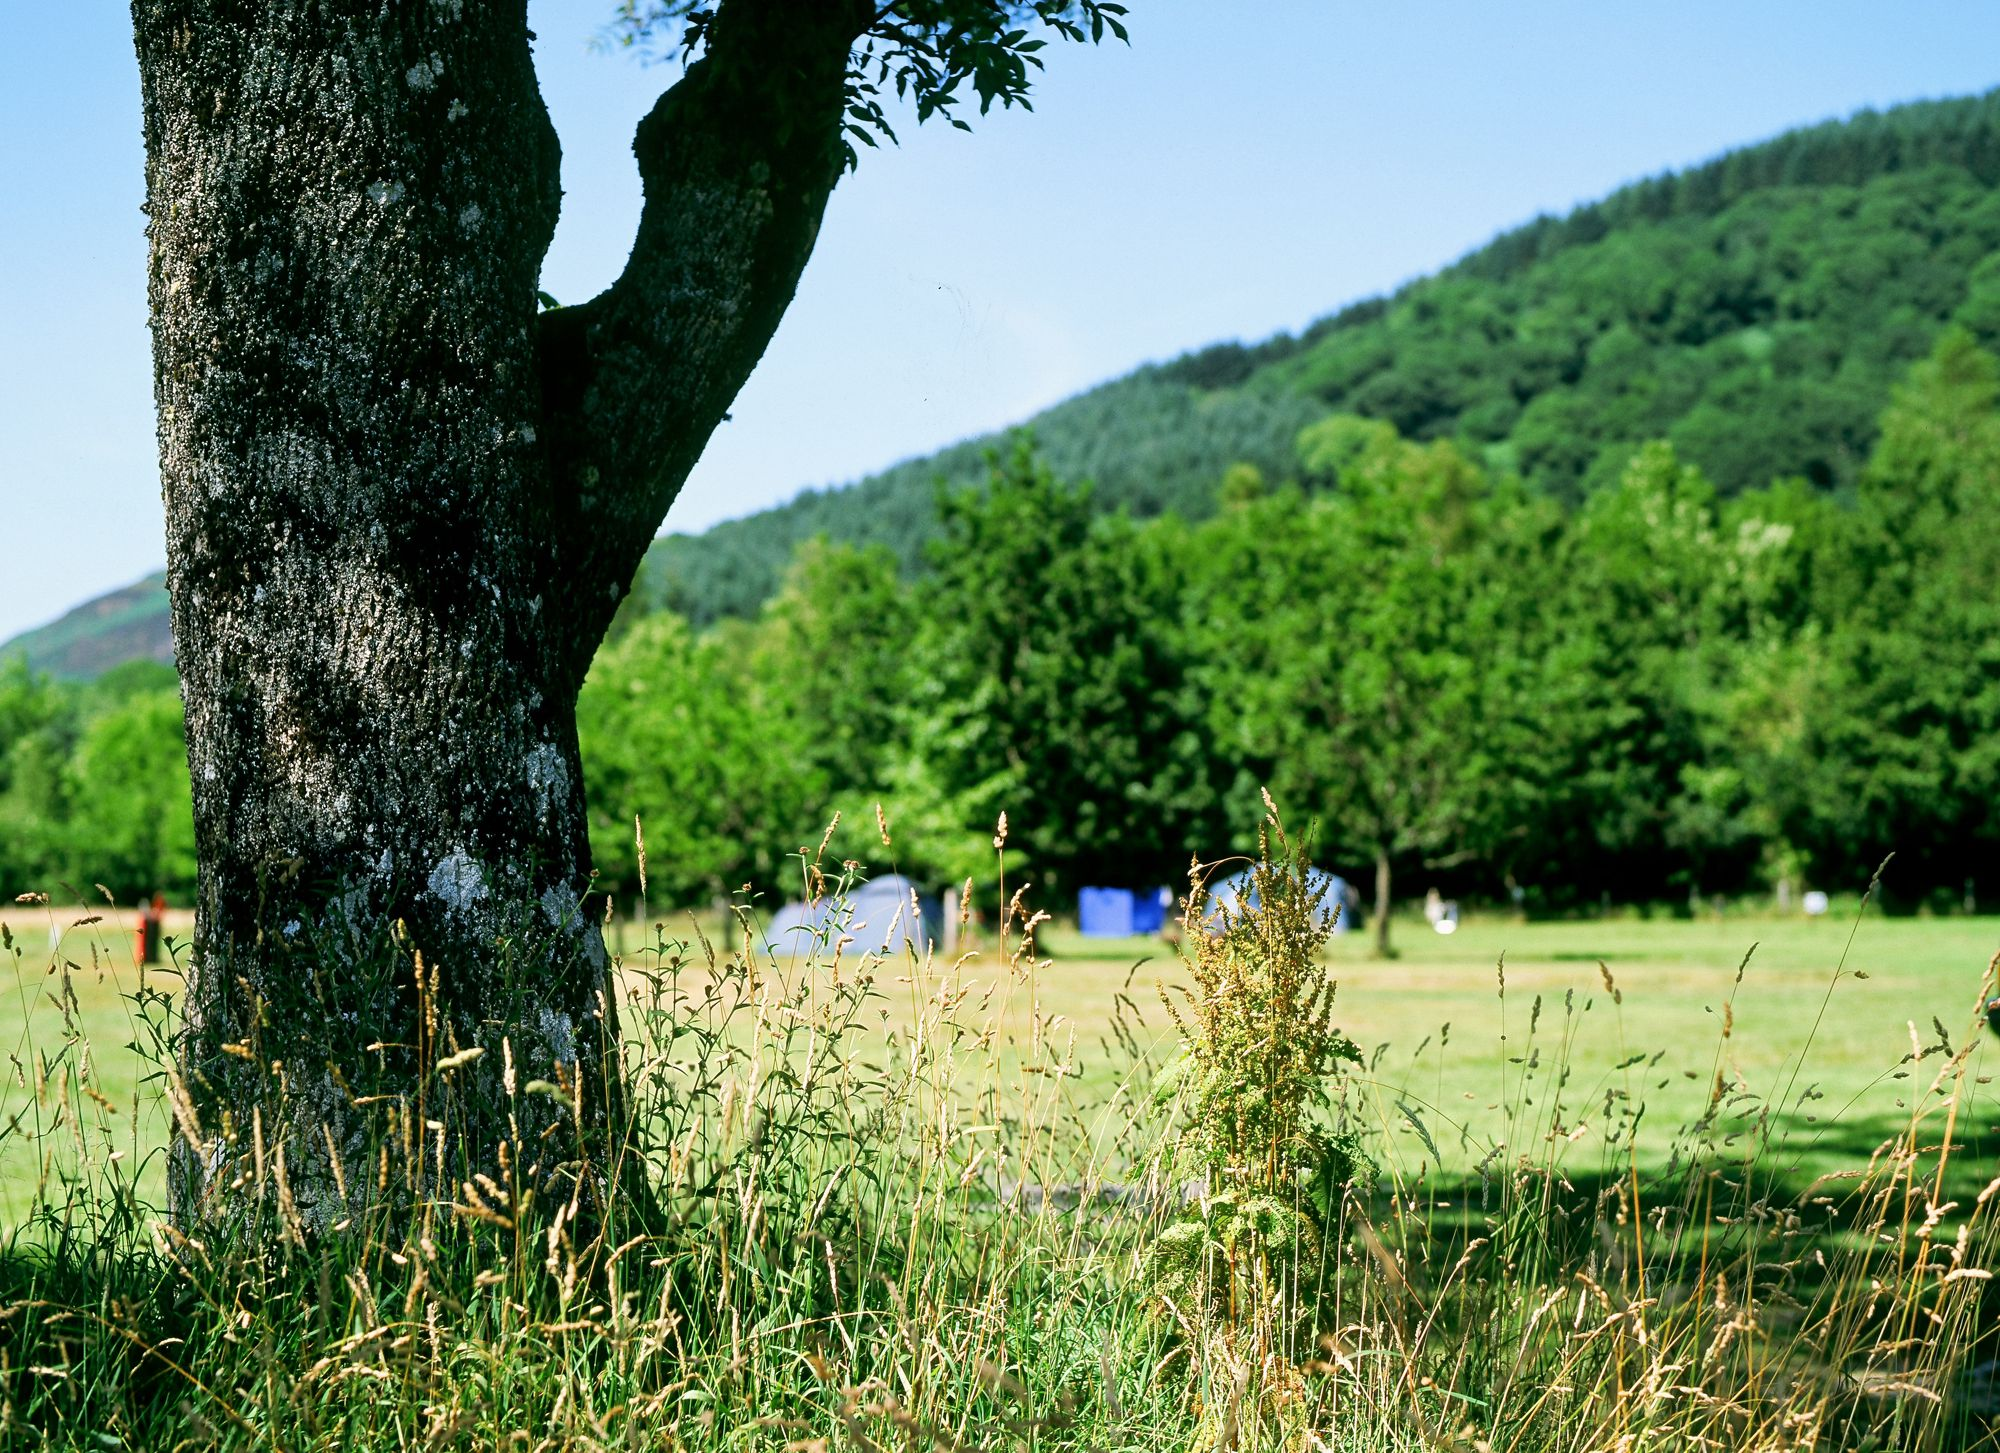 Camping and Caravanning Club Sites - UK Campsites and Caravan Sites